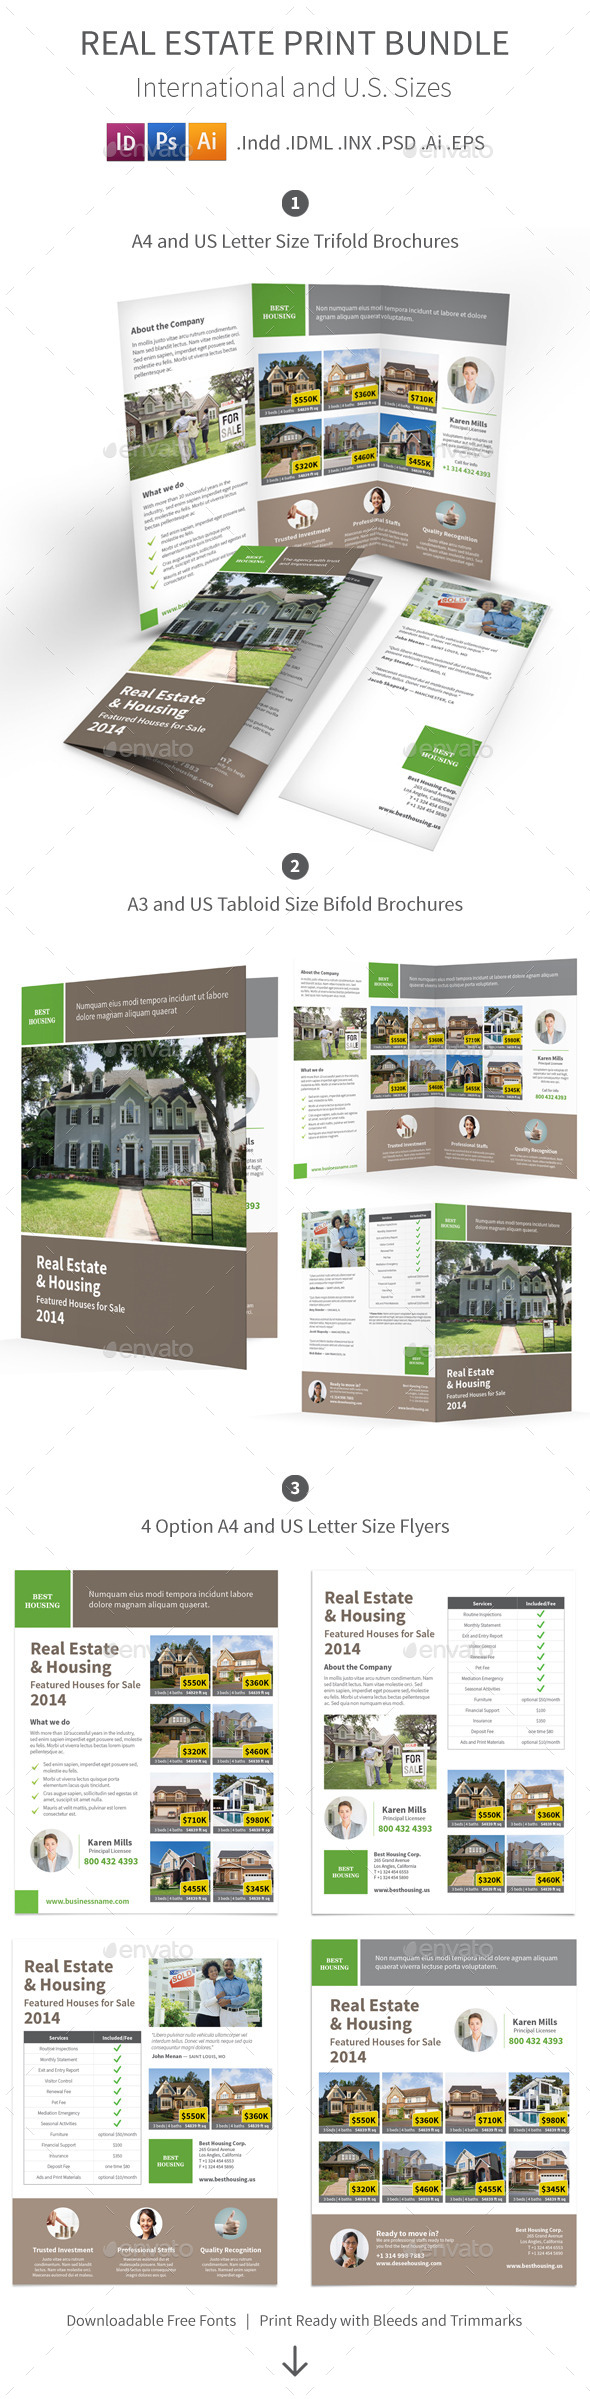 Real Estate Print Bundle - Informational Brochures